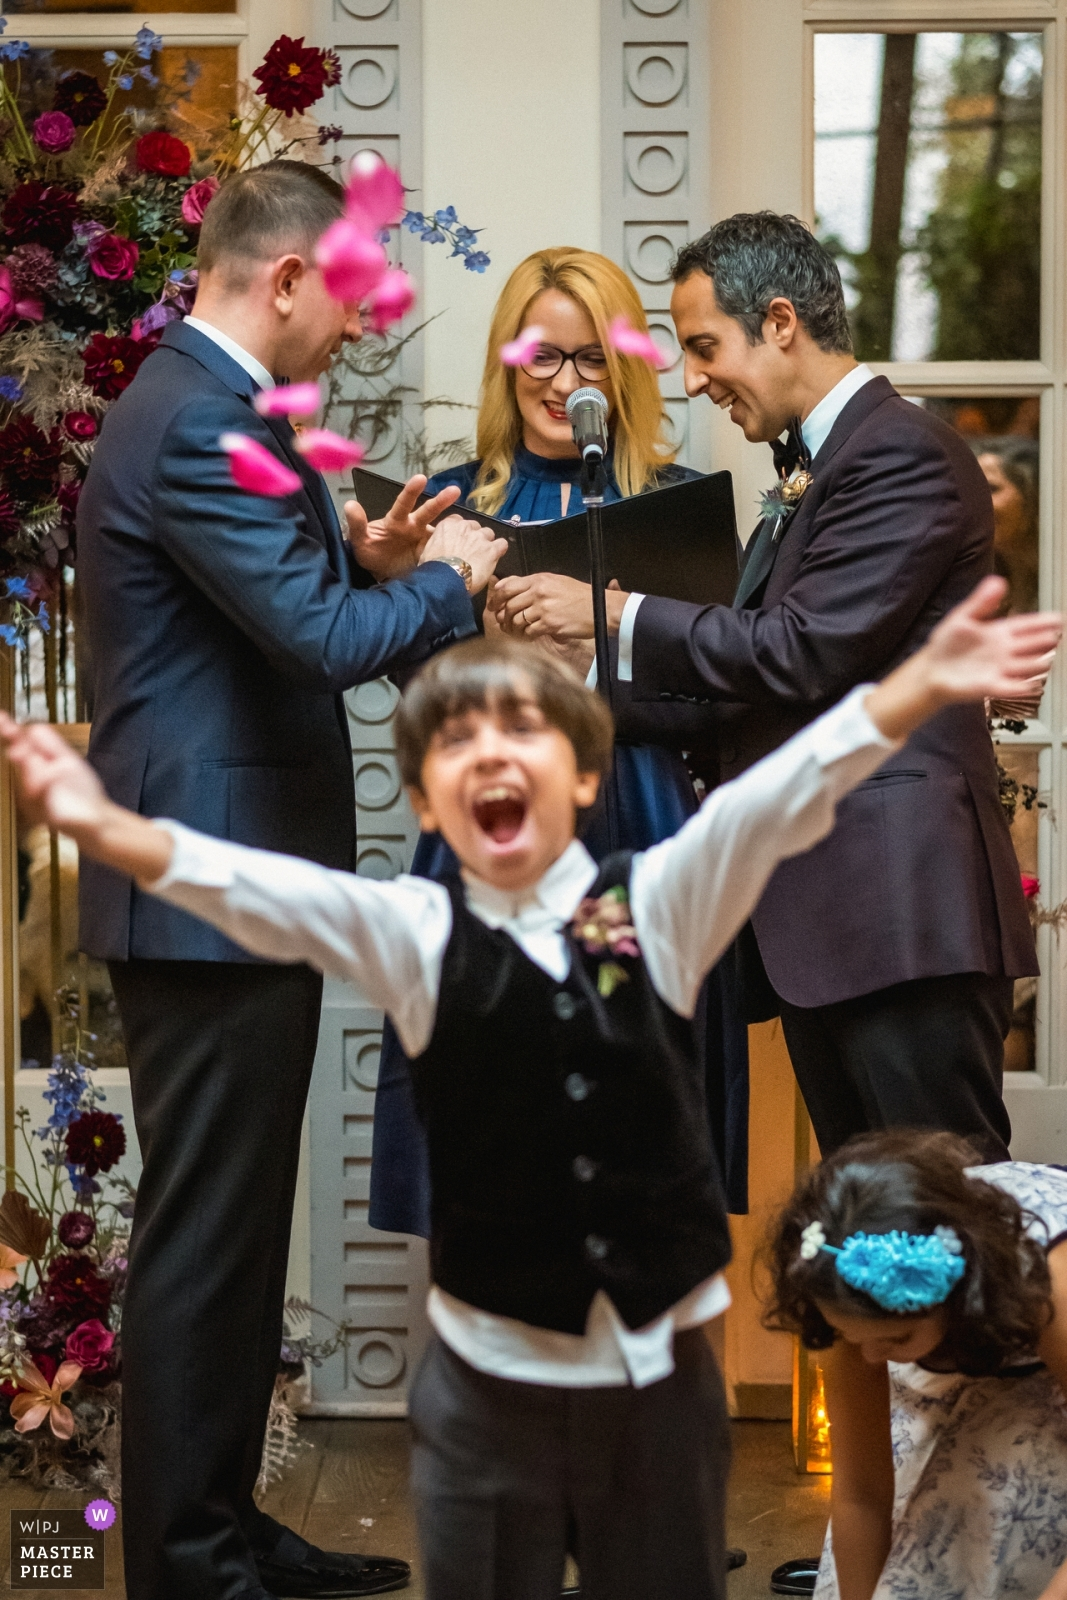 The ring-bear and the son of couple abruptly throws rose petals to celebrate while they exchange rings during their wedding ceremony. - Los Angeles, California - Southern Wedding Photography -  | Spago, Beverly Hills, California